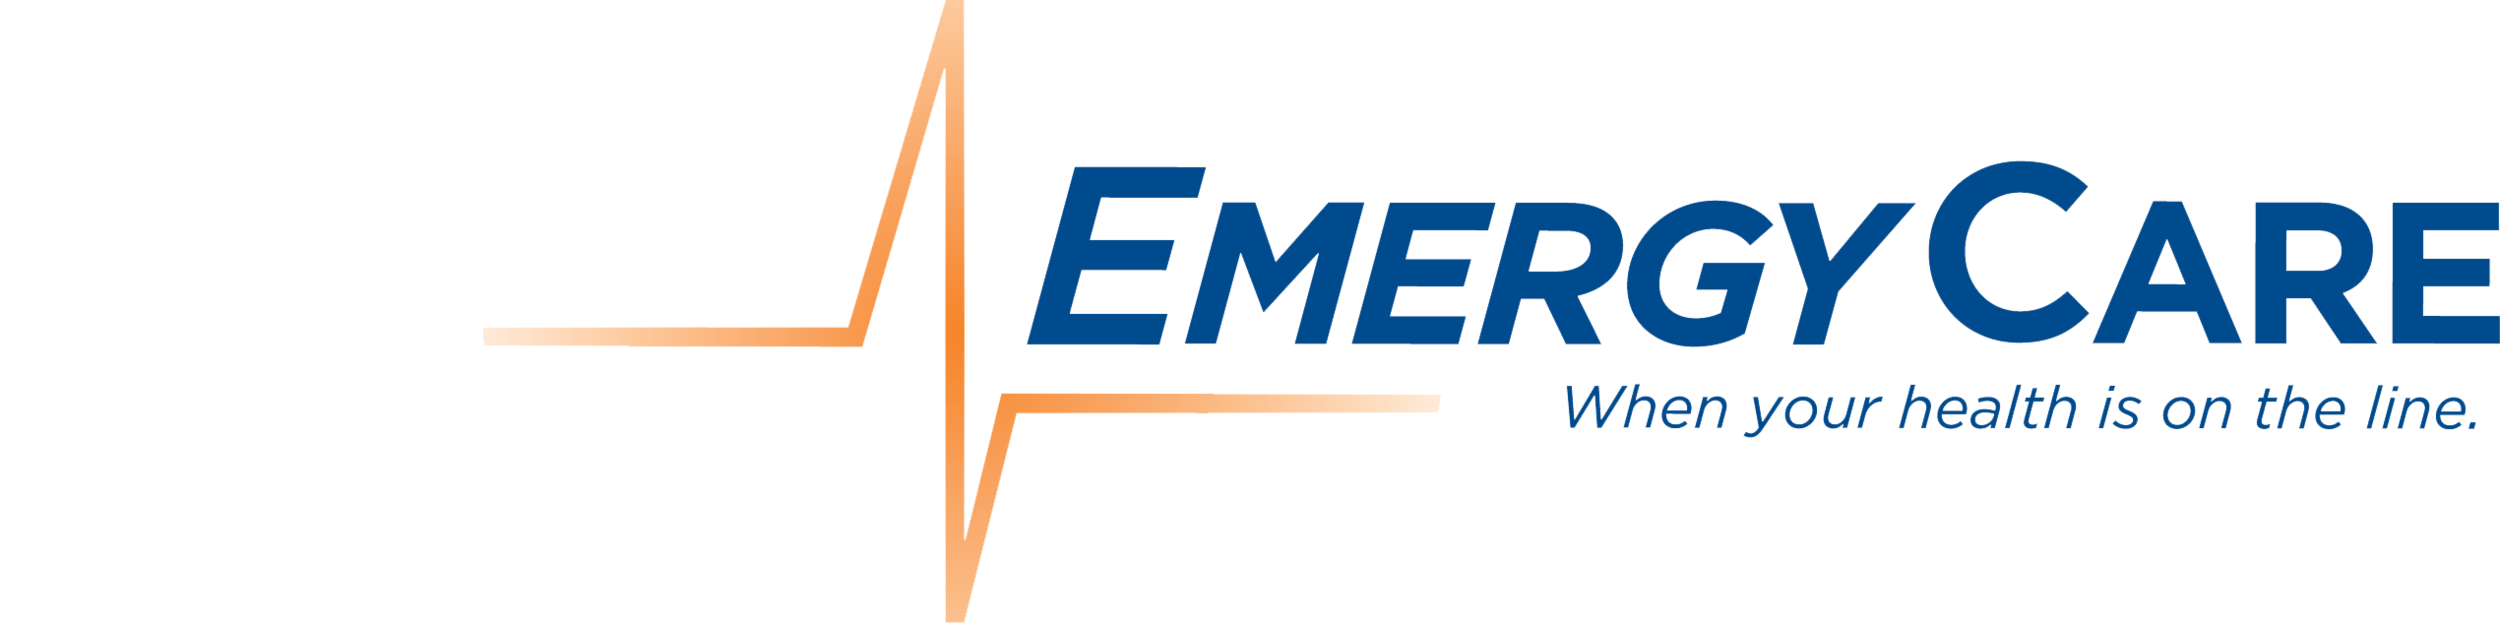 EmergyCare.png